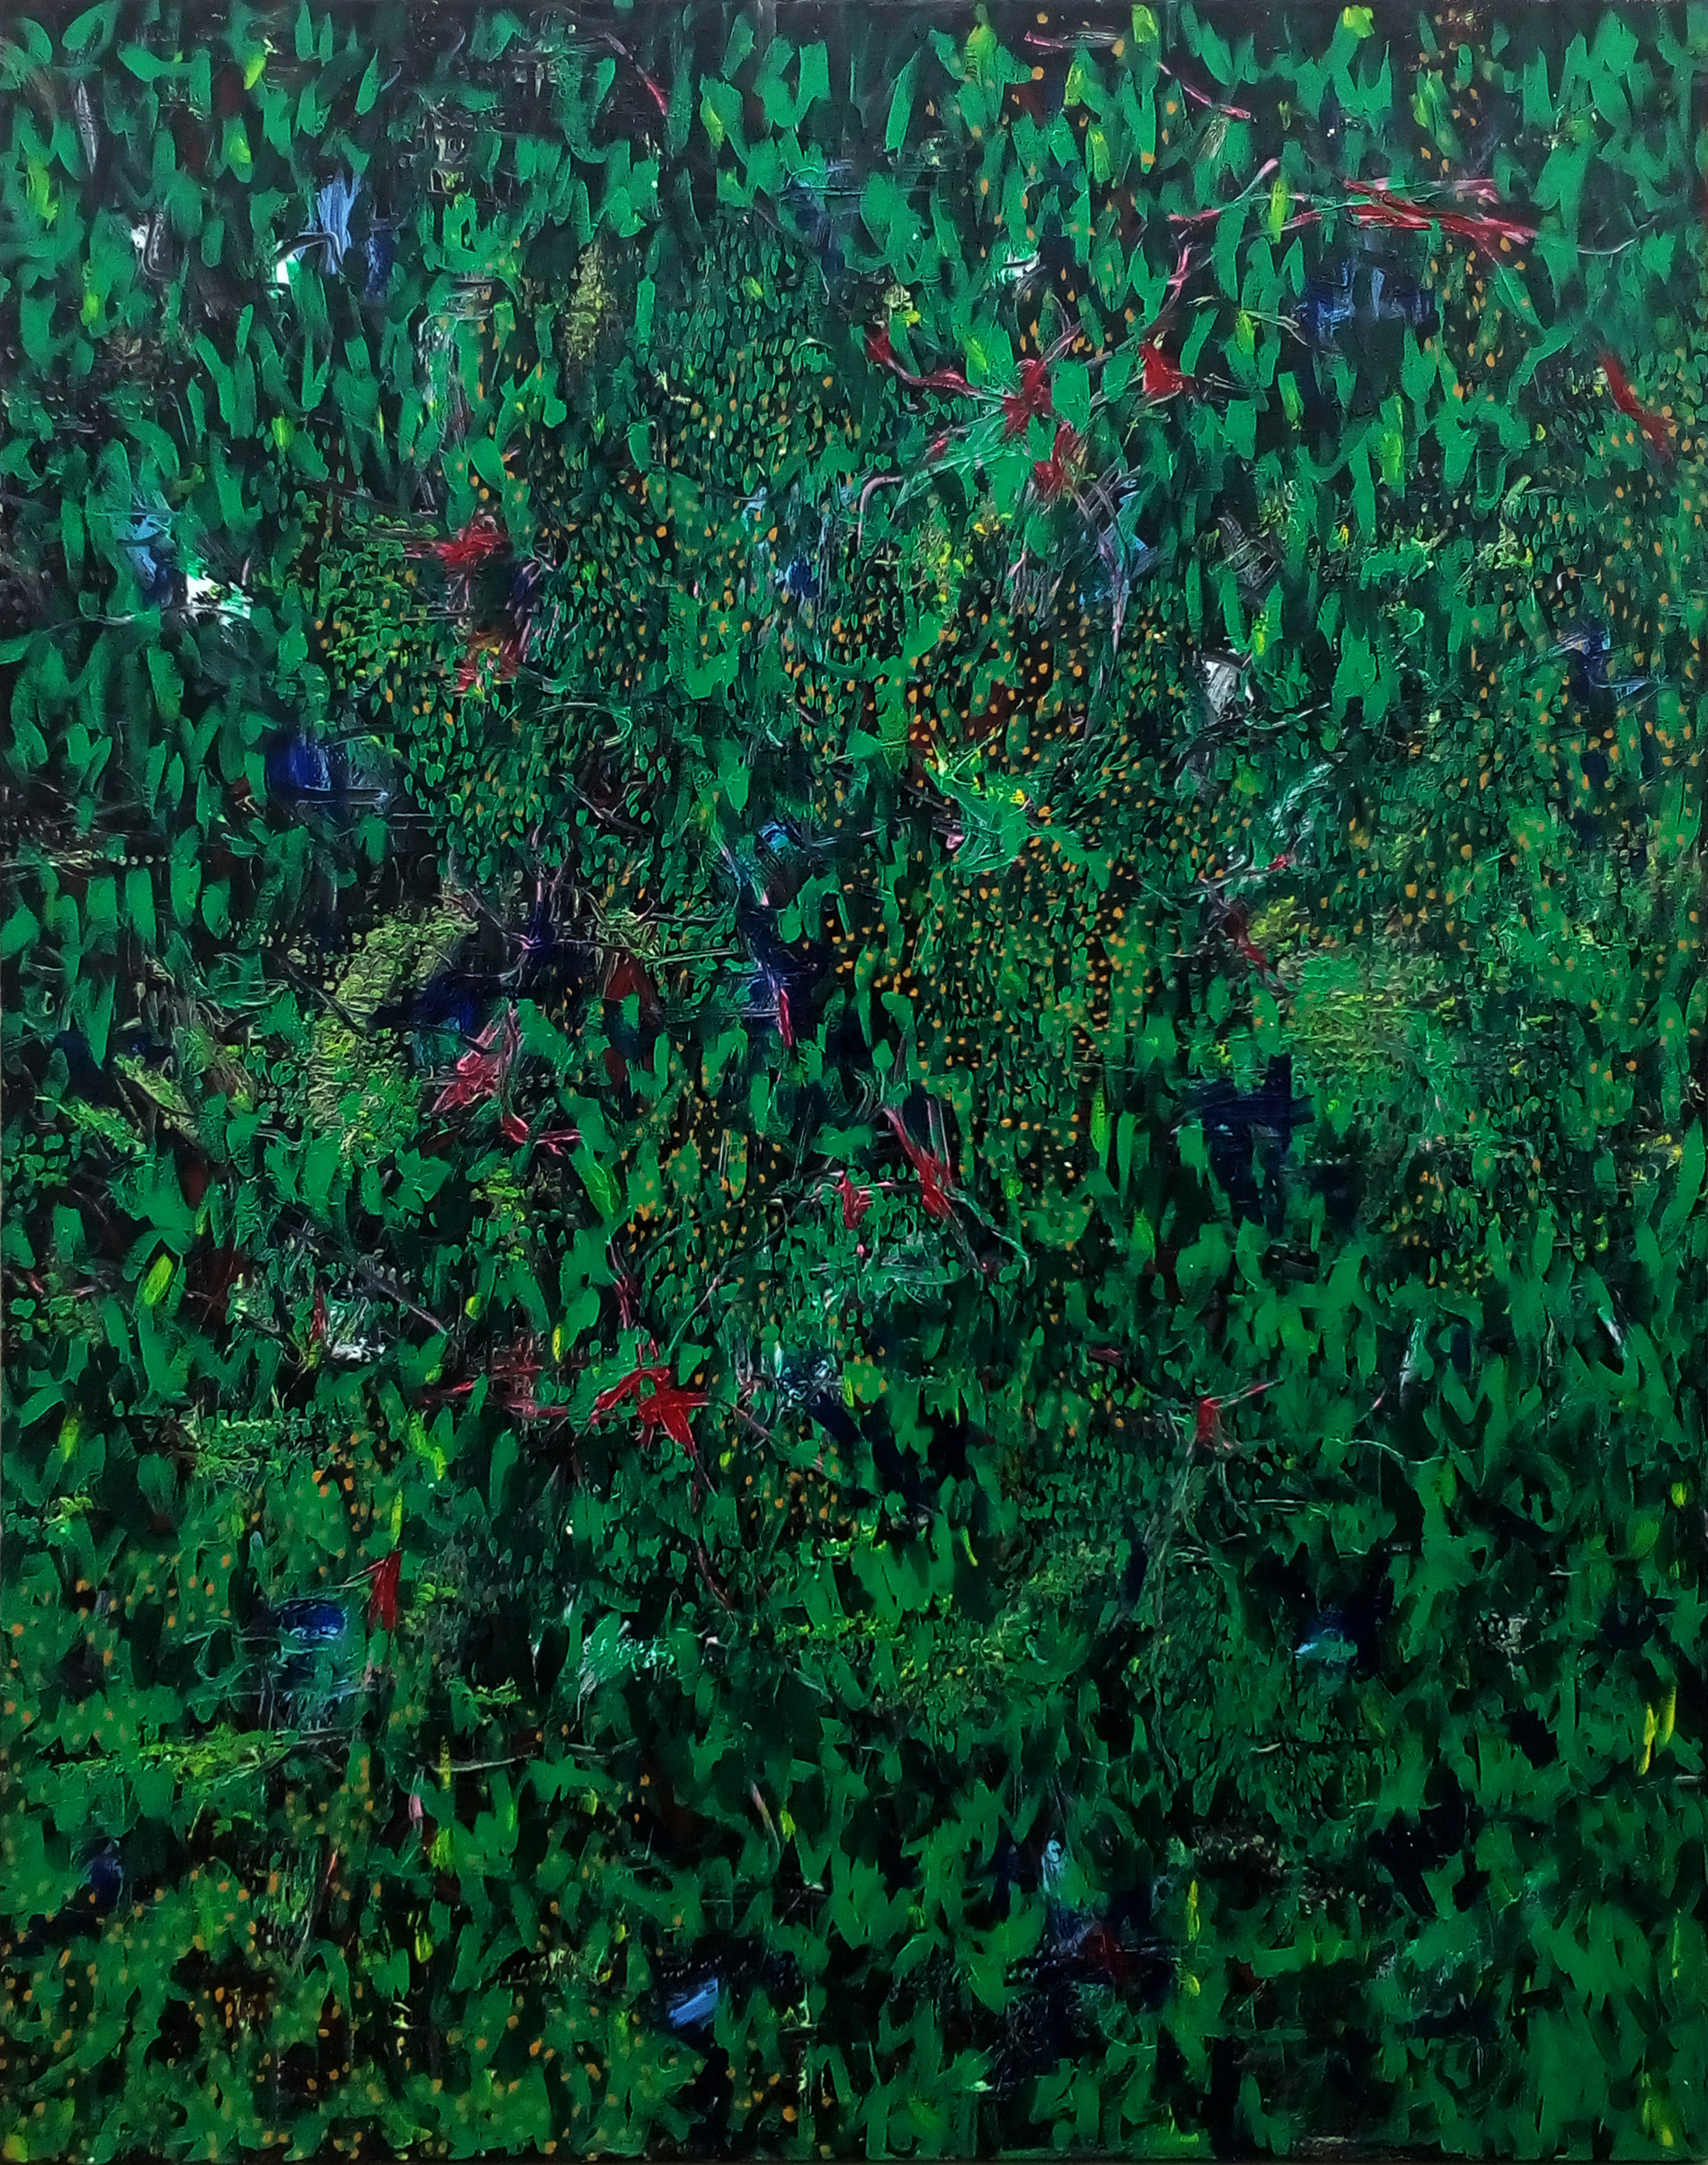 David, Lizza May - Das Urbild 2014 oil on canvas 160 x 130cm.jpg